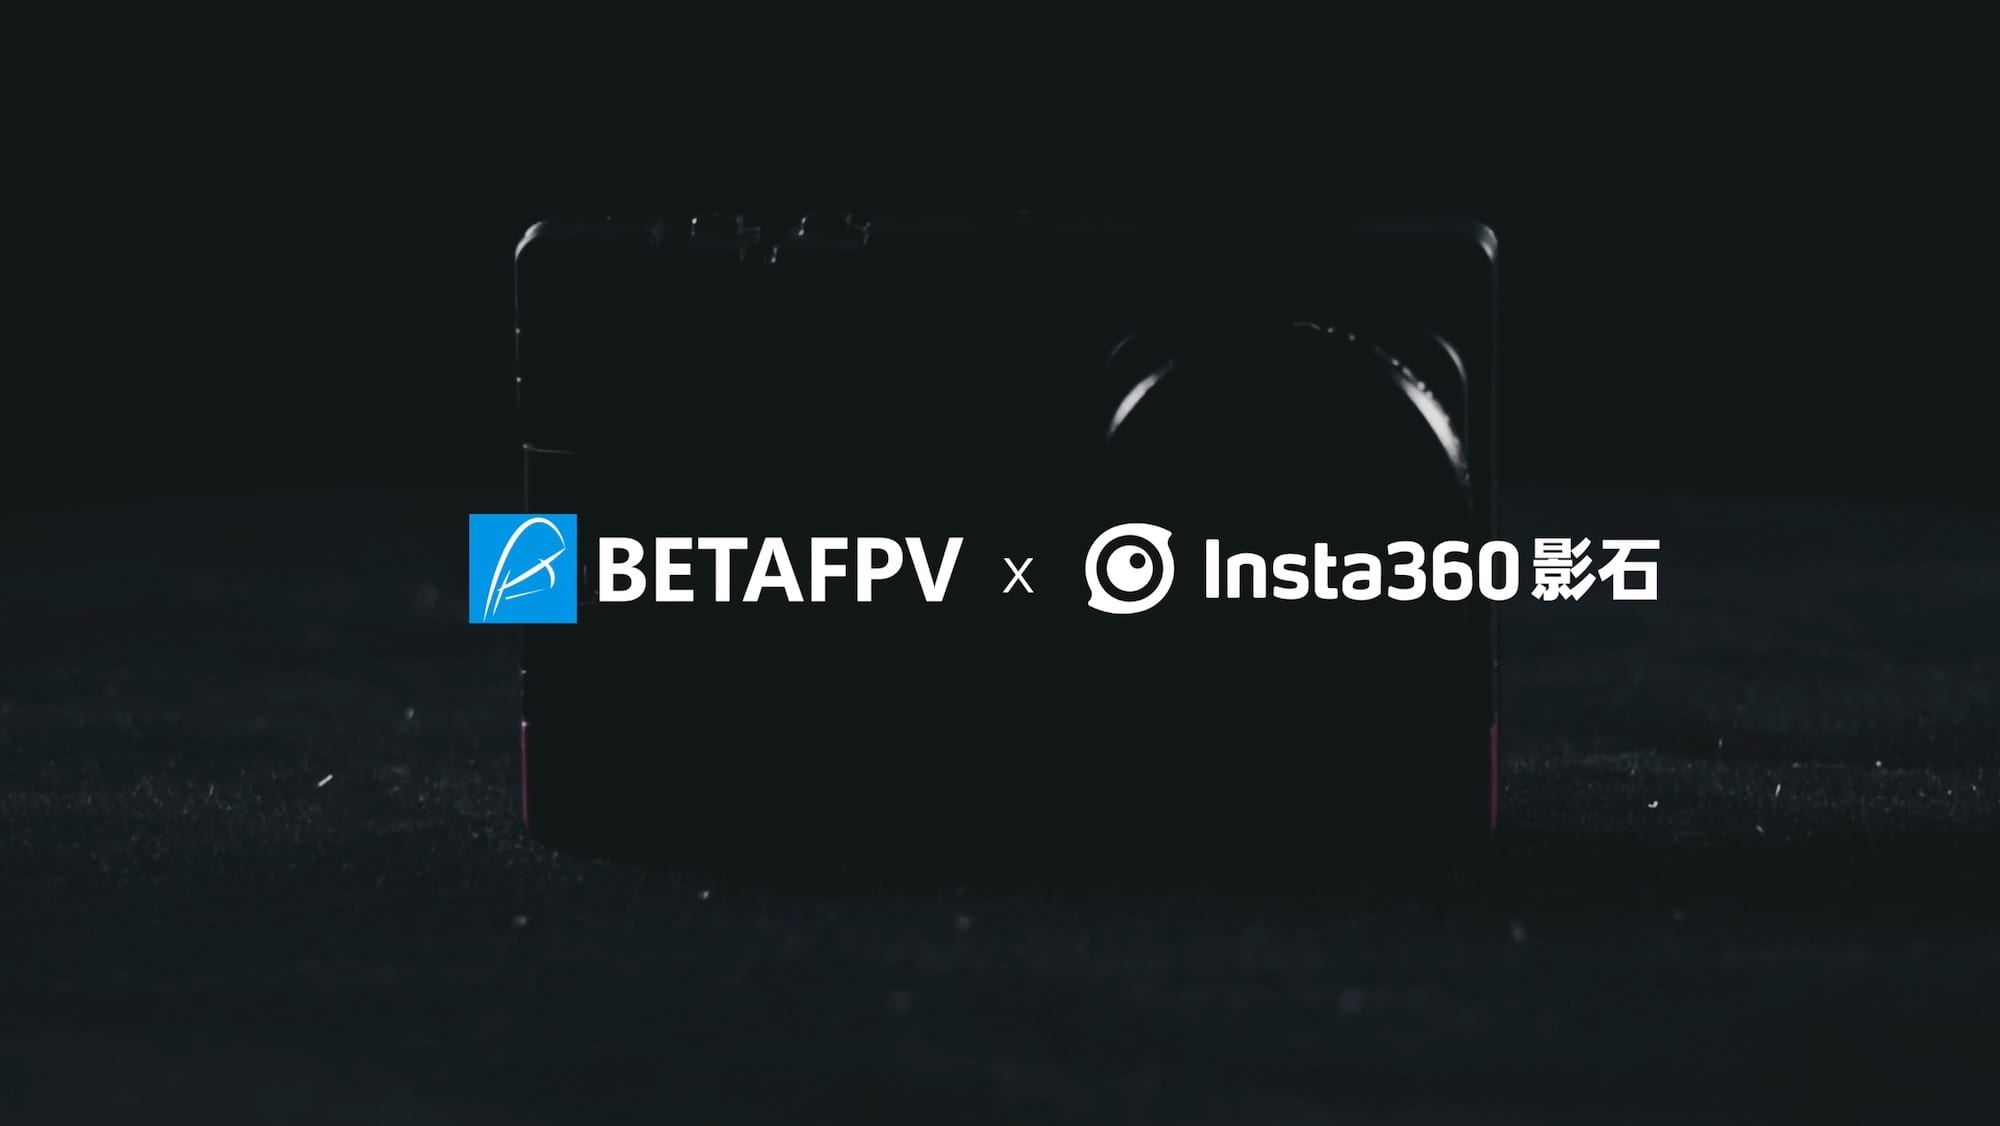 New BetaFPV drone with Insta360 camera coming in December?